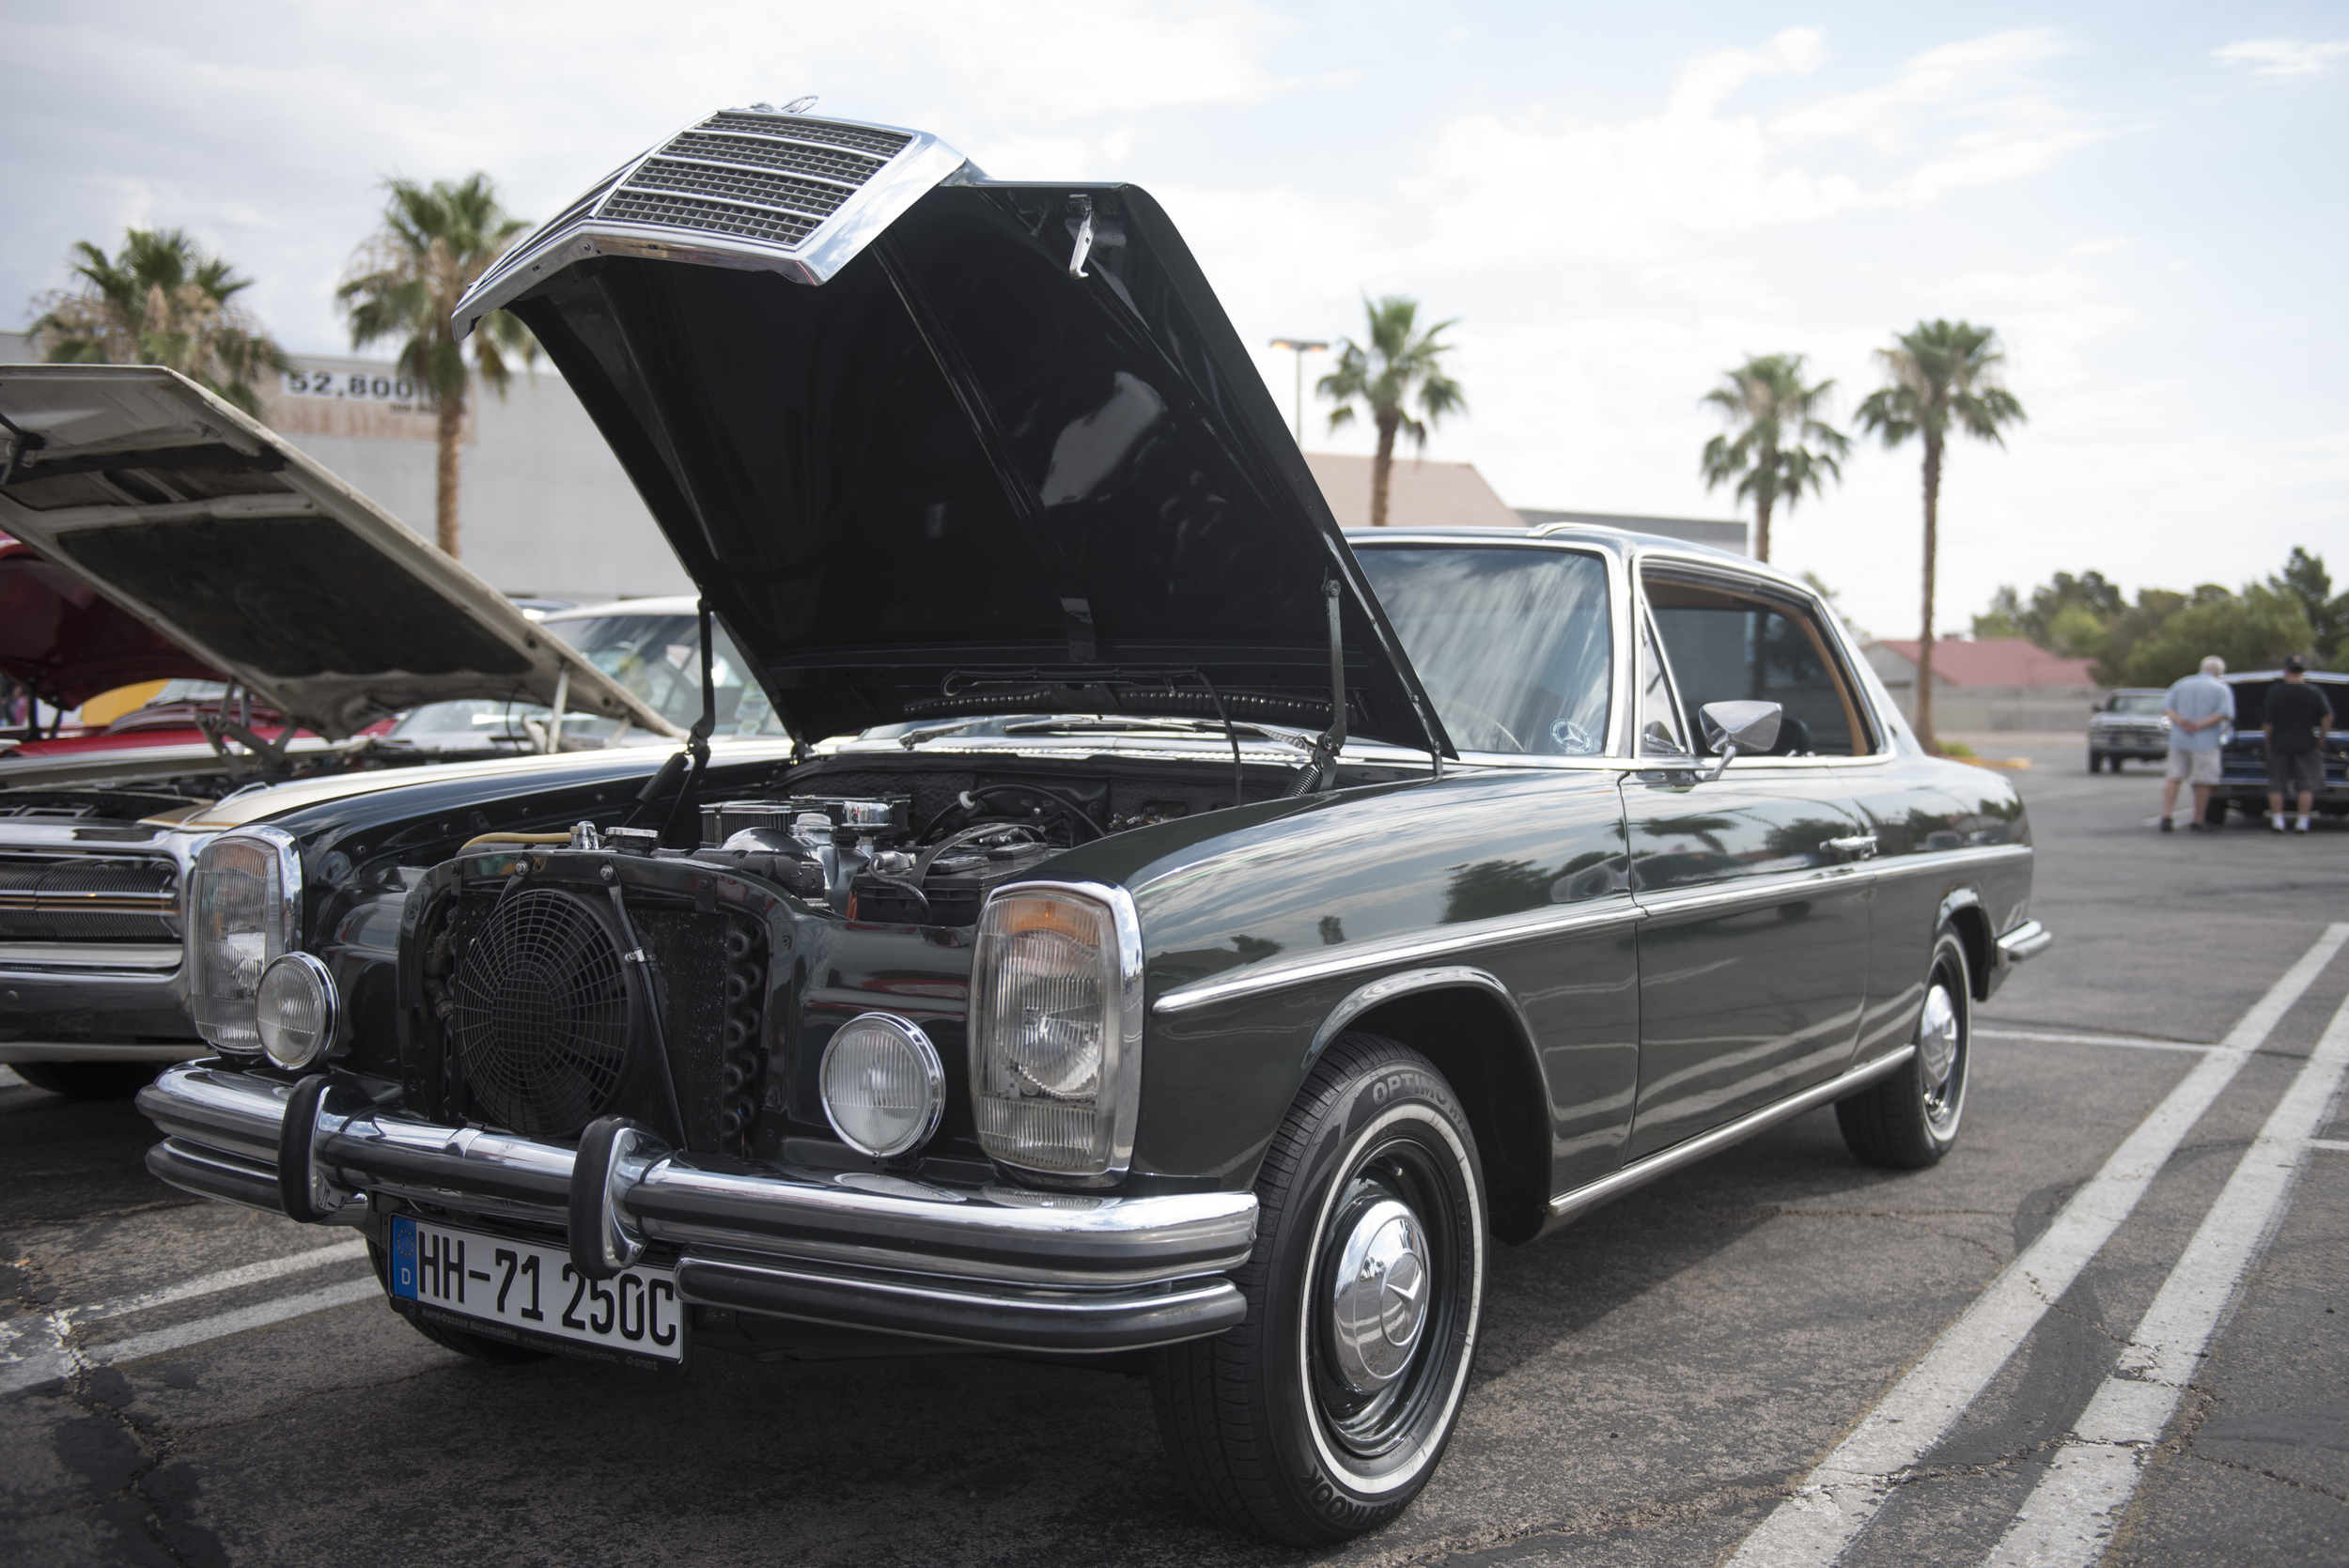 Barbara Benson's 1971 Mercedes-Benz 250 coupe is on display at the West End Boys car gathering in the Vons parking lot at 6000 West Cheyenne Avenue in Las Vegas, Sunday, July 5, 2015.(Jason Ogulnik/Las Vegas Review-Journal)